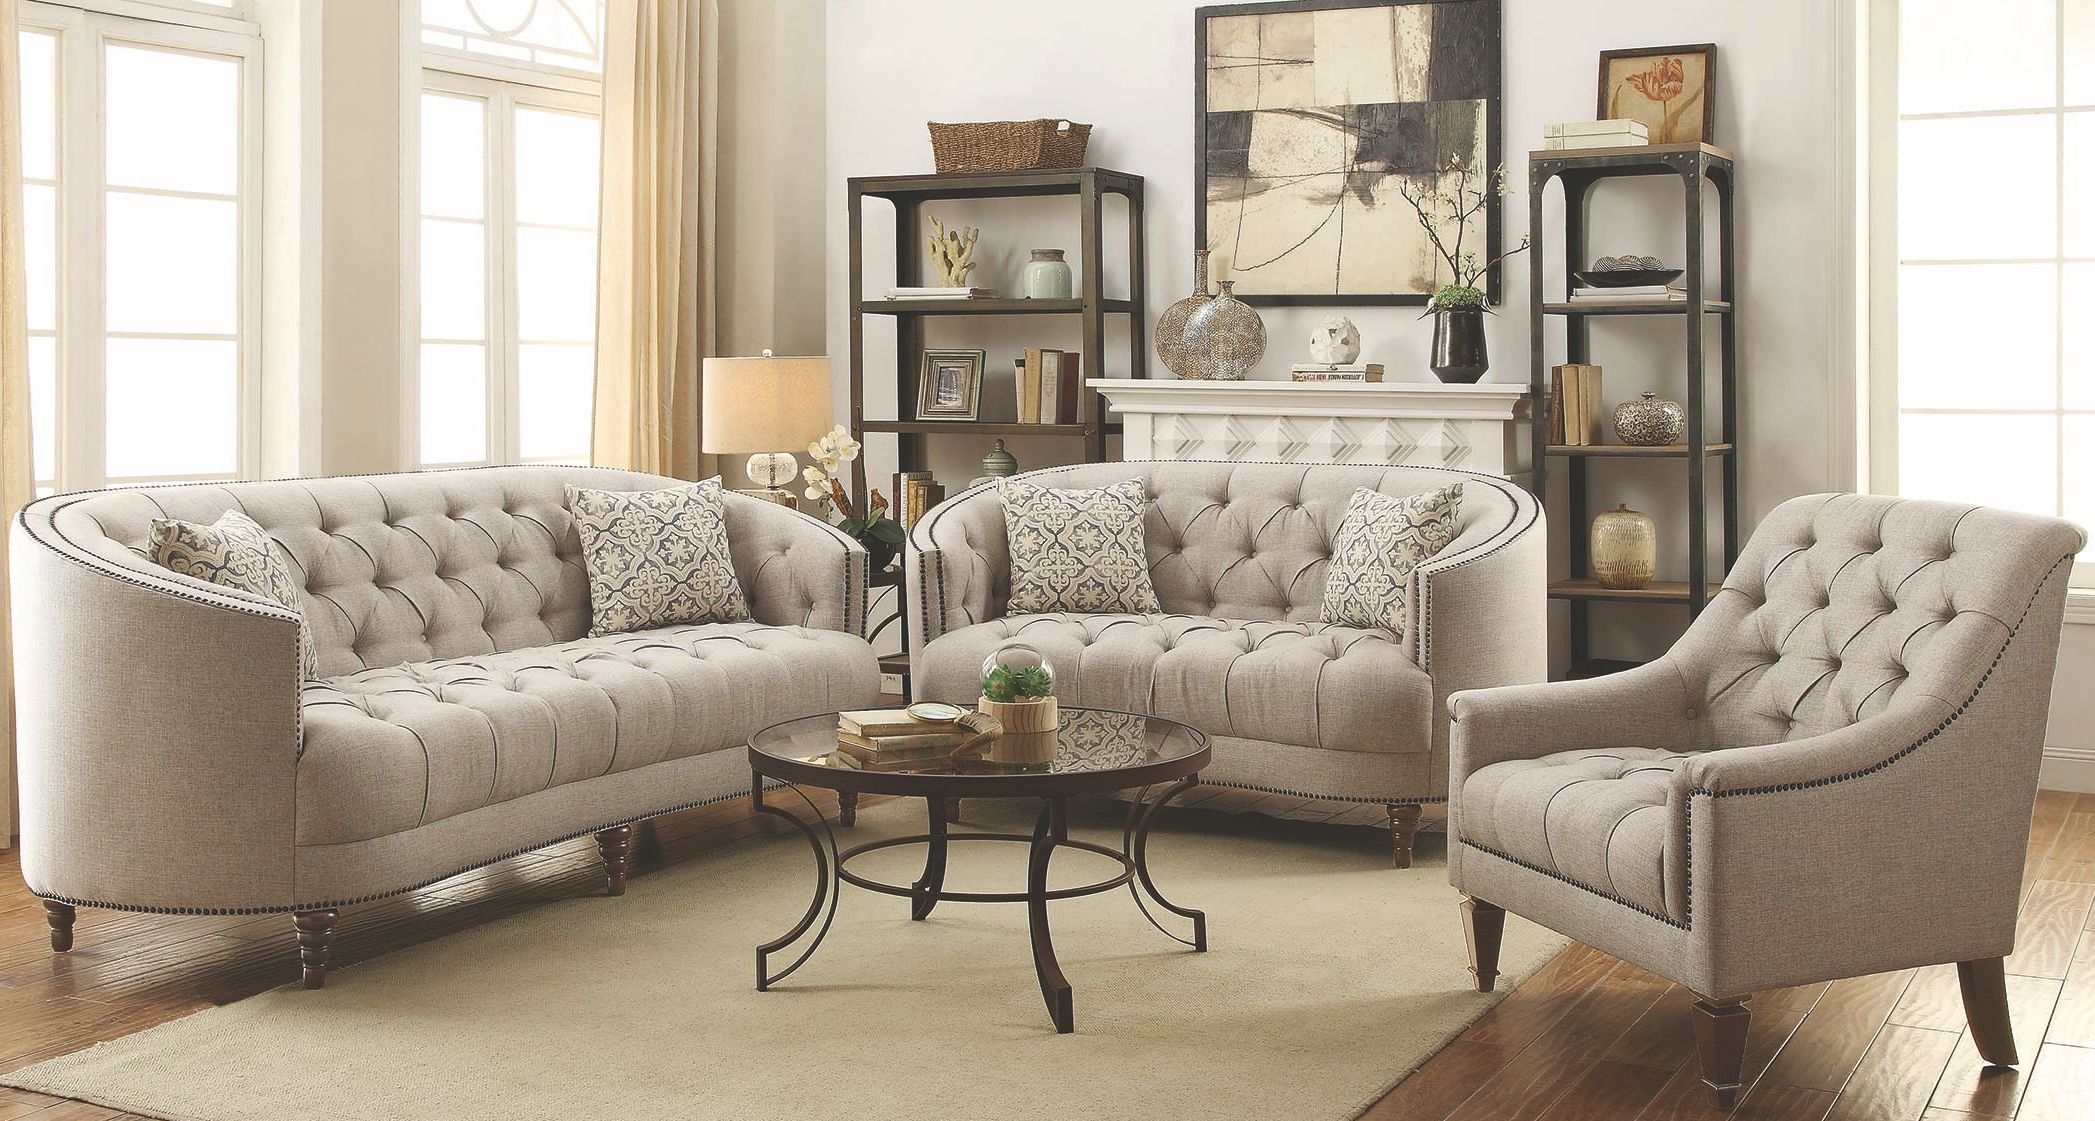 Coaster Avonlea Stone Grey Living Room Set Avonlea Collection 15 in Living Room Set